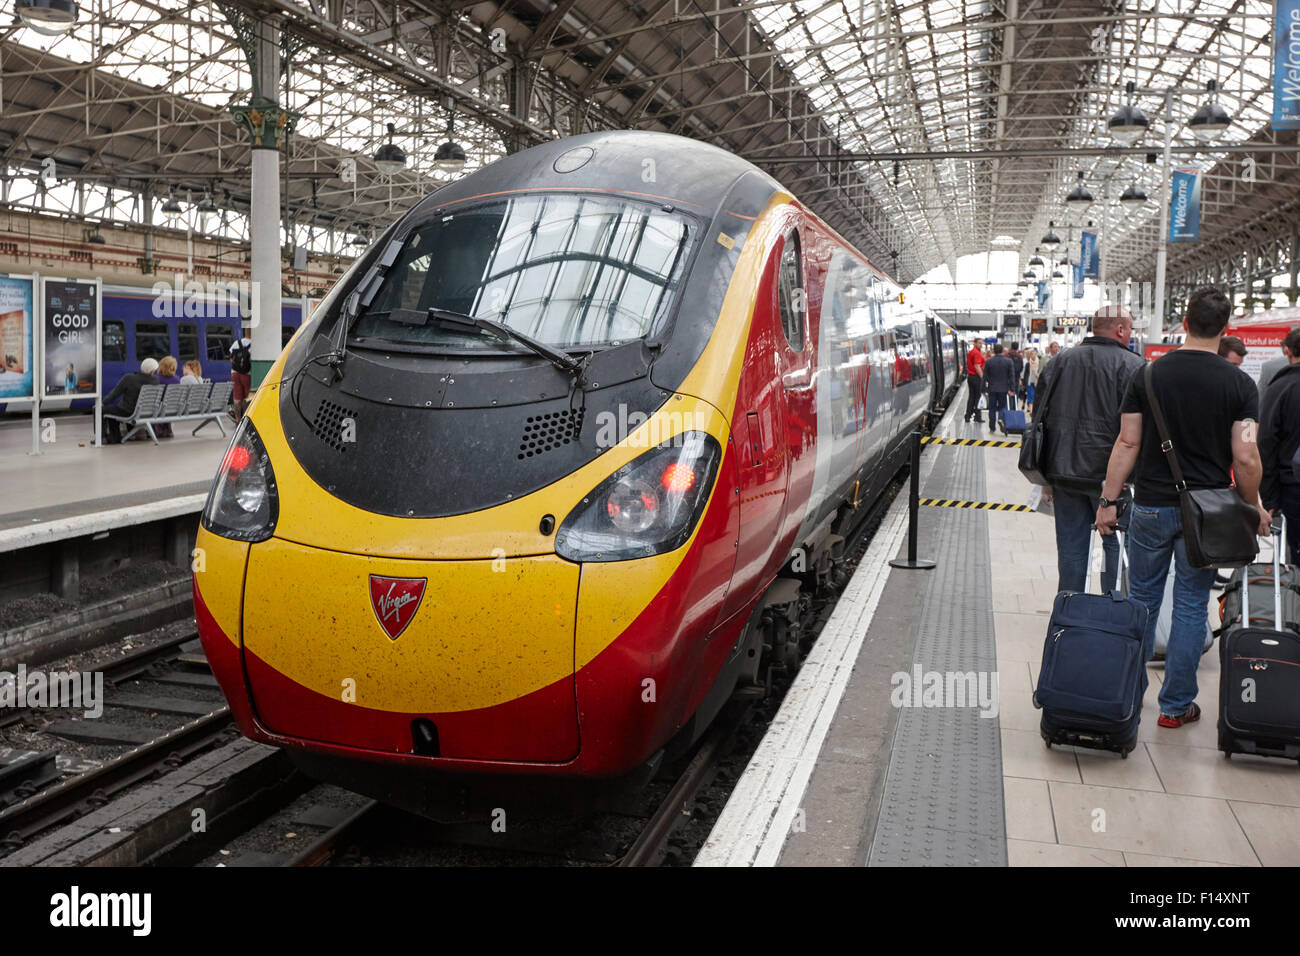 virgin trains pendolino train at platform in Piccadilly train station Manchester UK - Stock Image